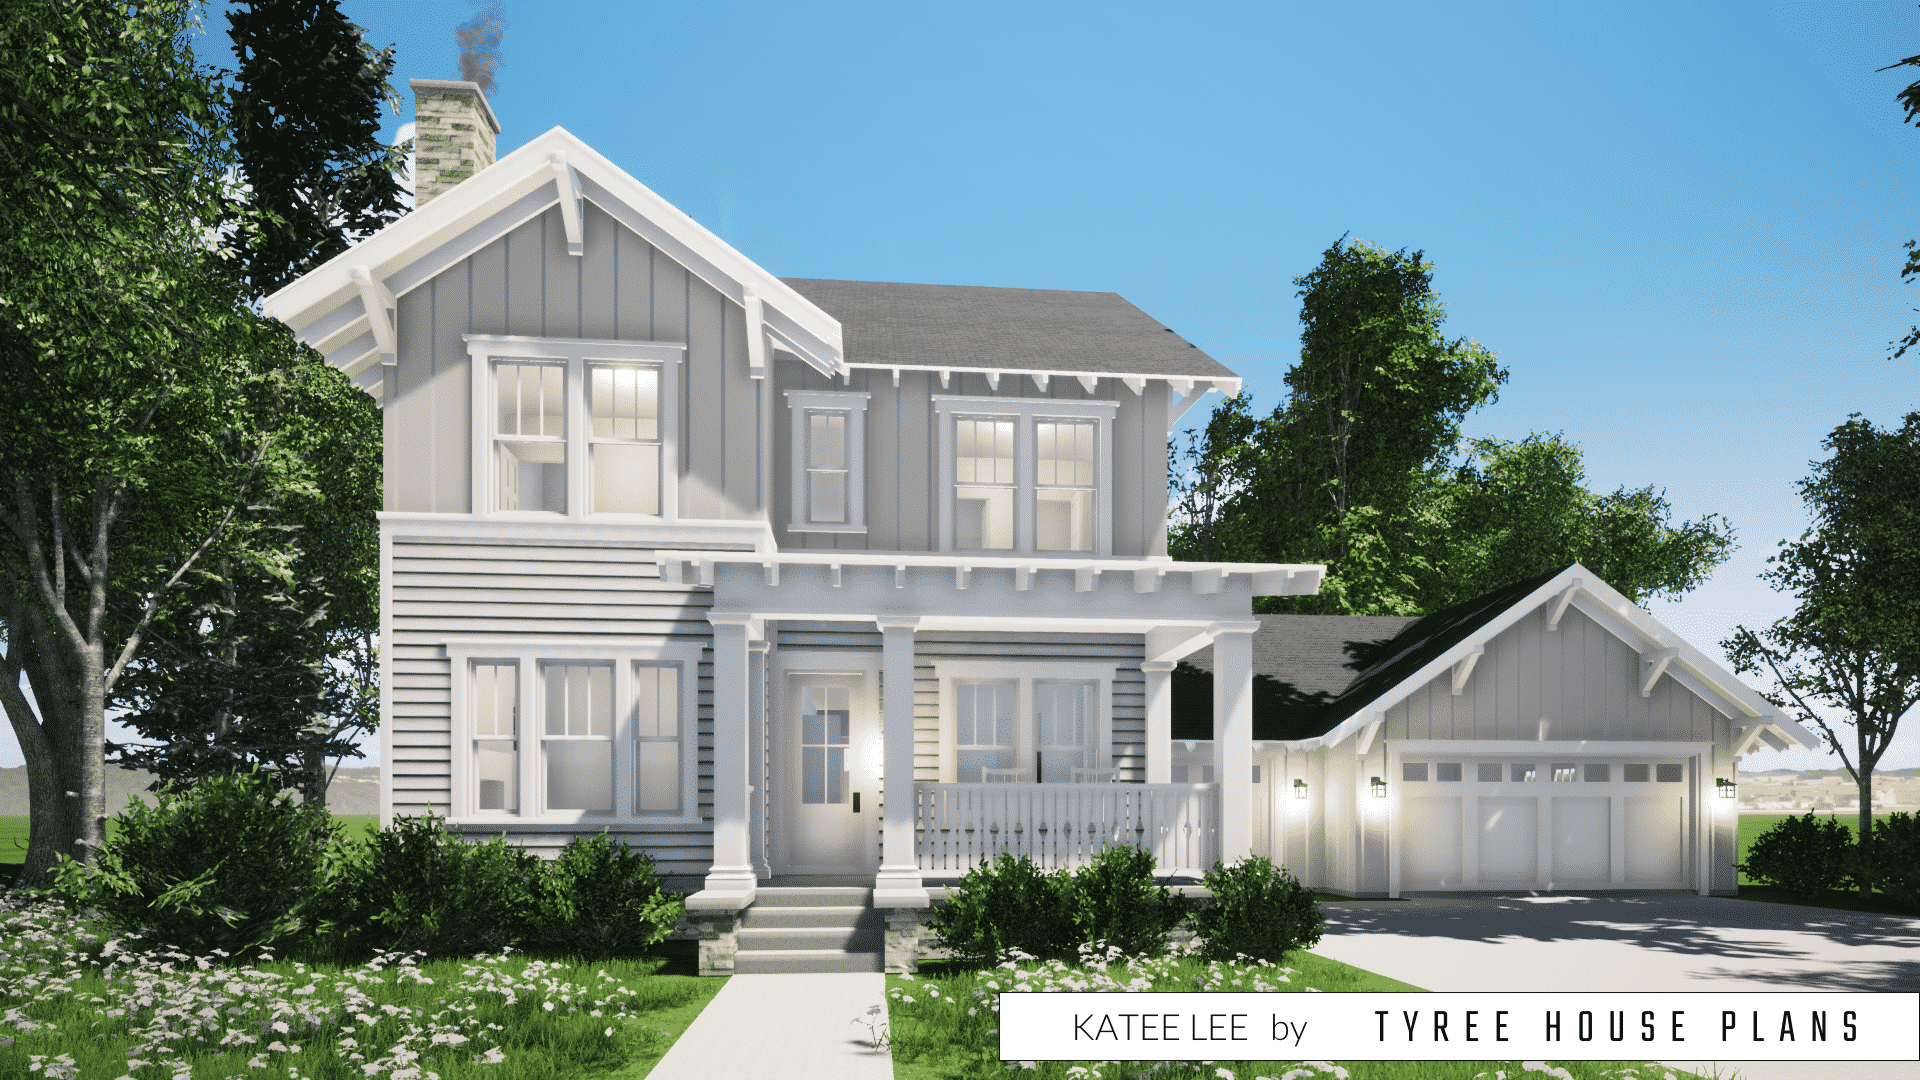 Katee Lee House Plan by Tyree House Plans